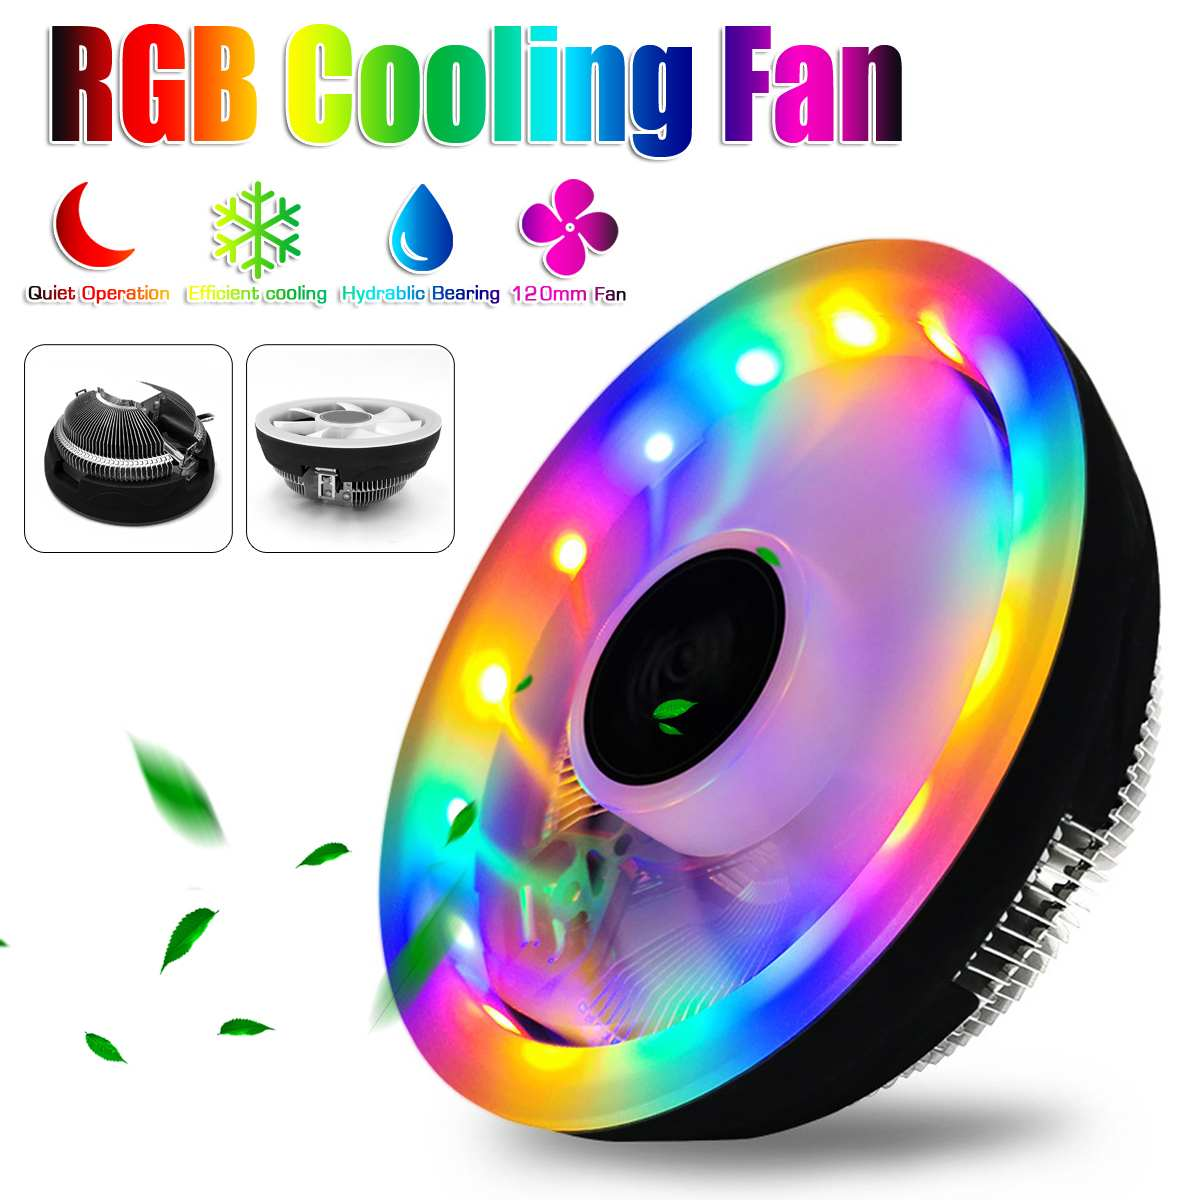 LEORY Durable Heatsink CPU Cooler Cooling Radiator Fan 3 Pin RGB CPU Cooler for CPUs with Power Less than 80W image